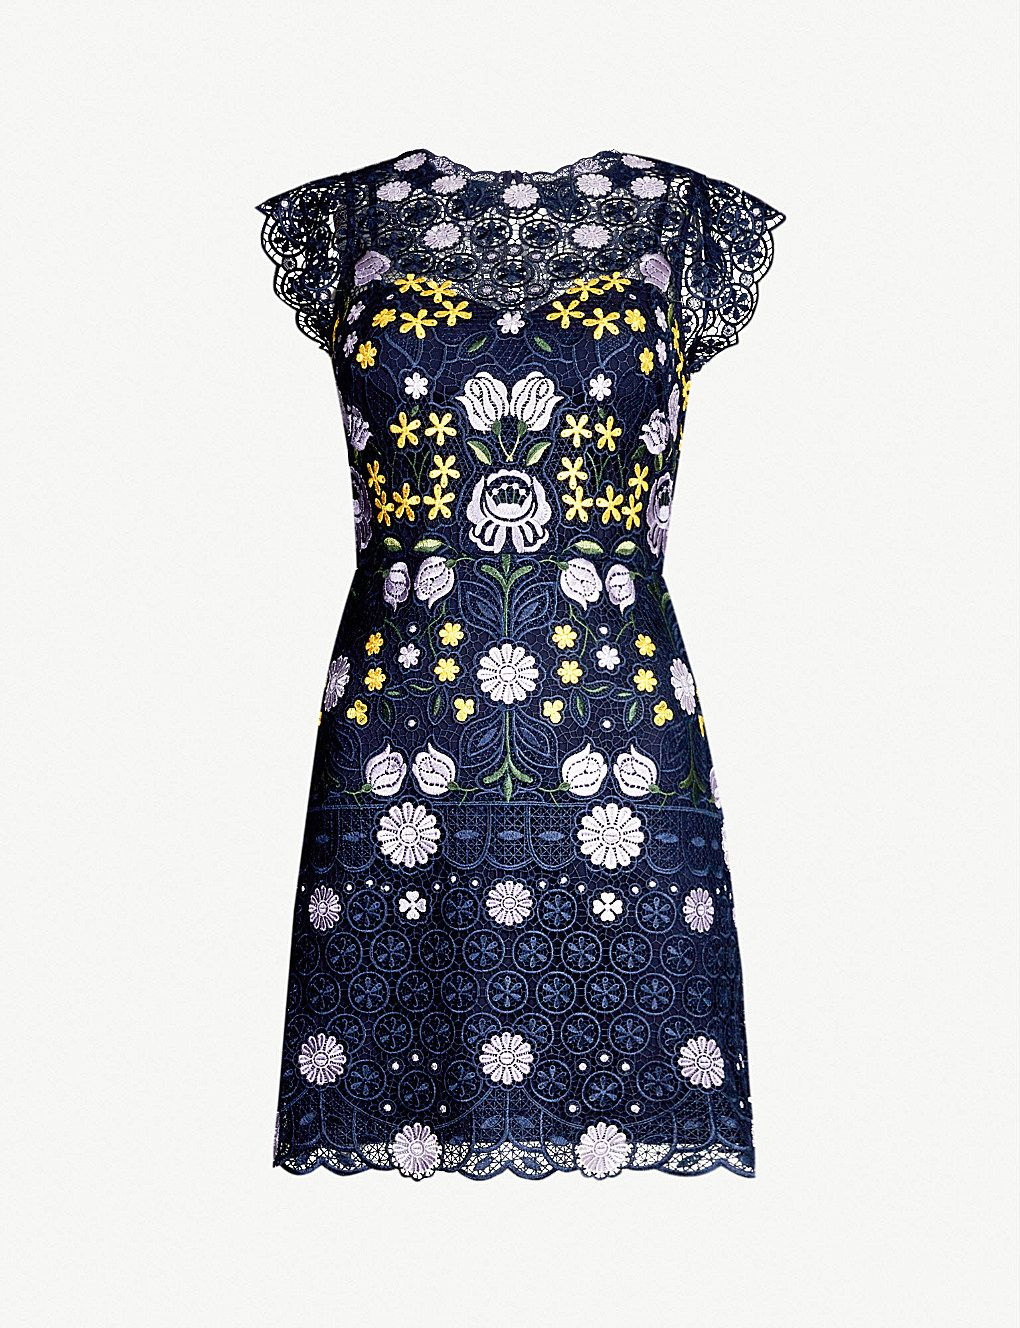 Karen Millen Garden Party Floral Embroidered Lace Mini Dress